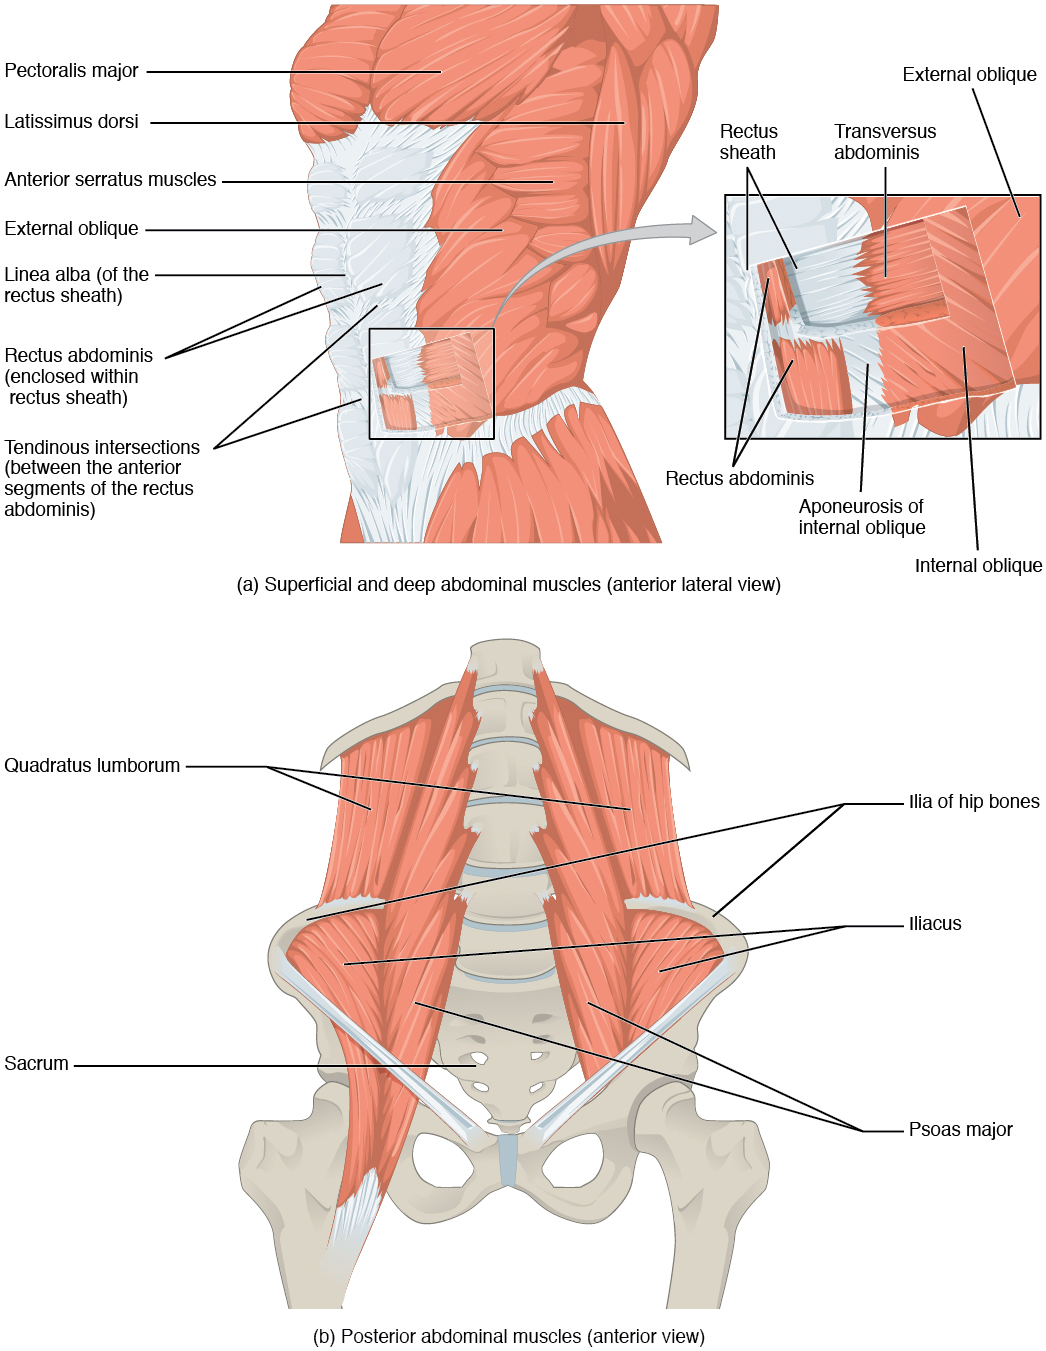 The top panel shows the lateral view of the superficial and deep abdominal muscles. The bottom panel shows the anterior view of the posterior abdominal muscles.